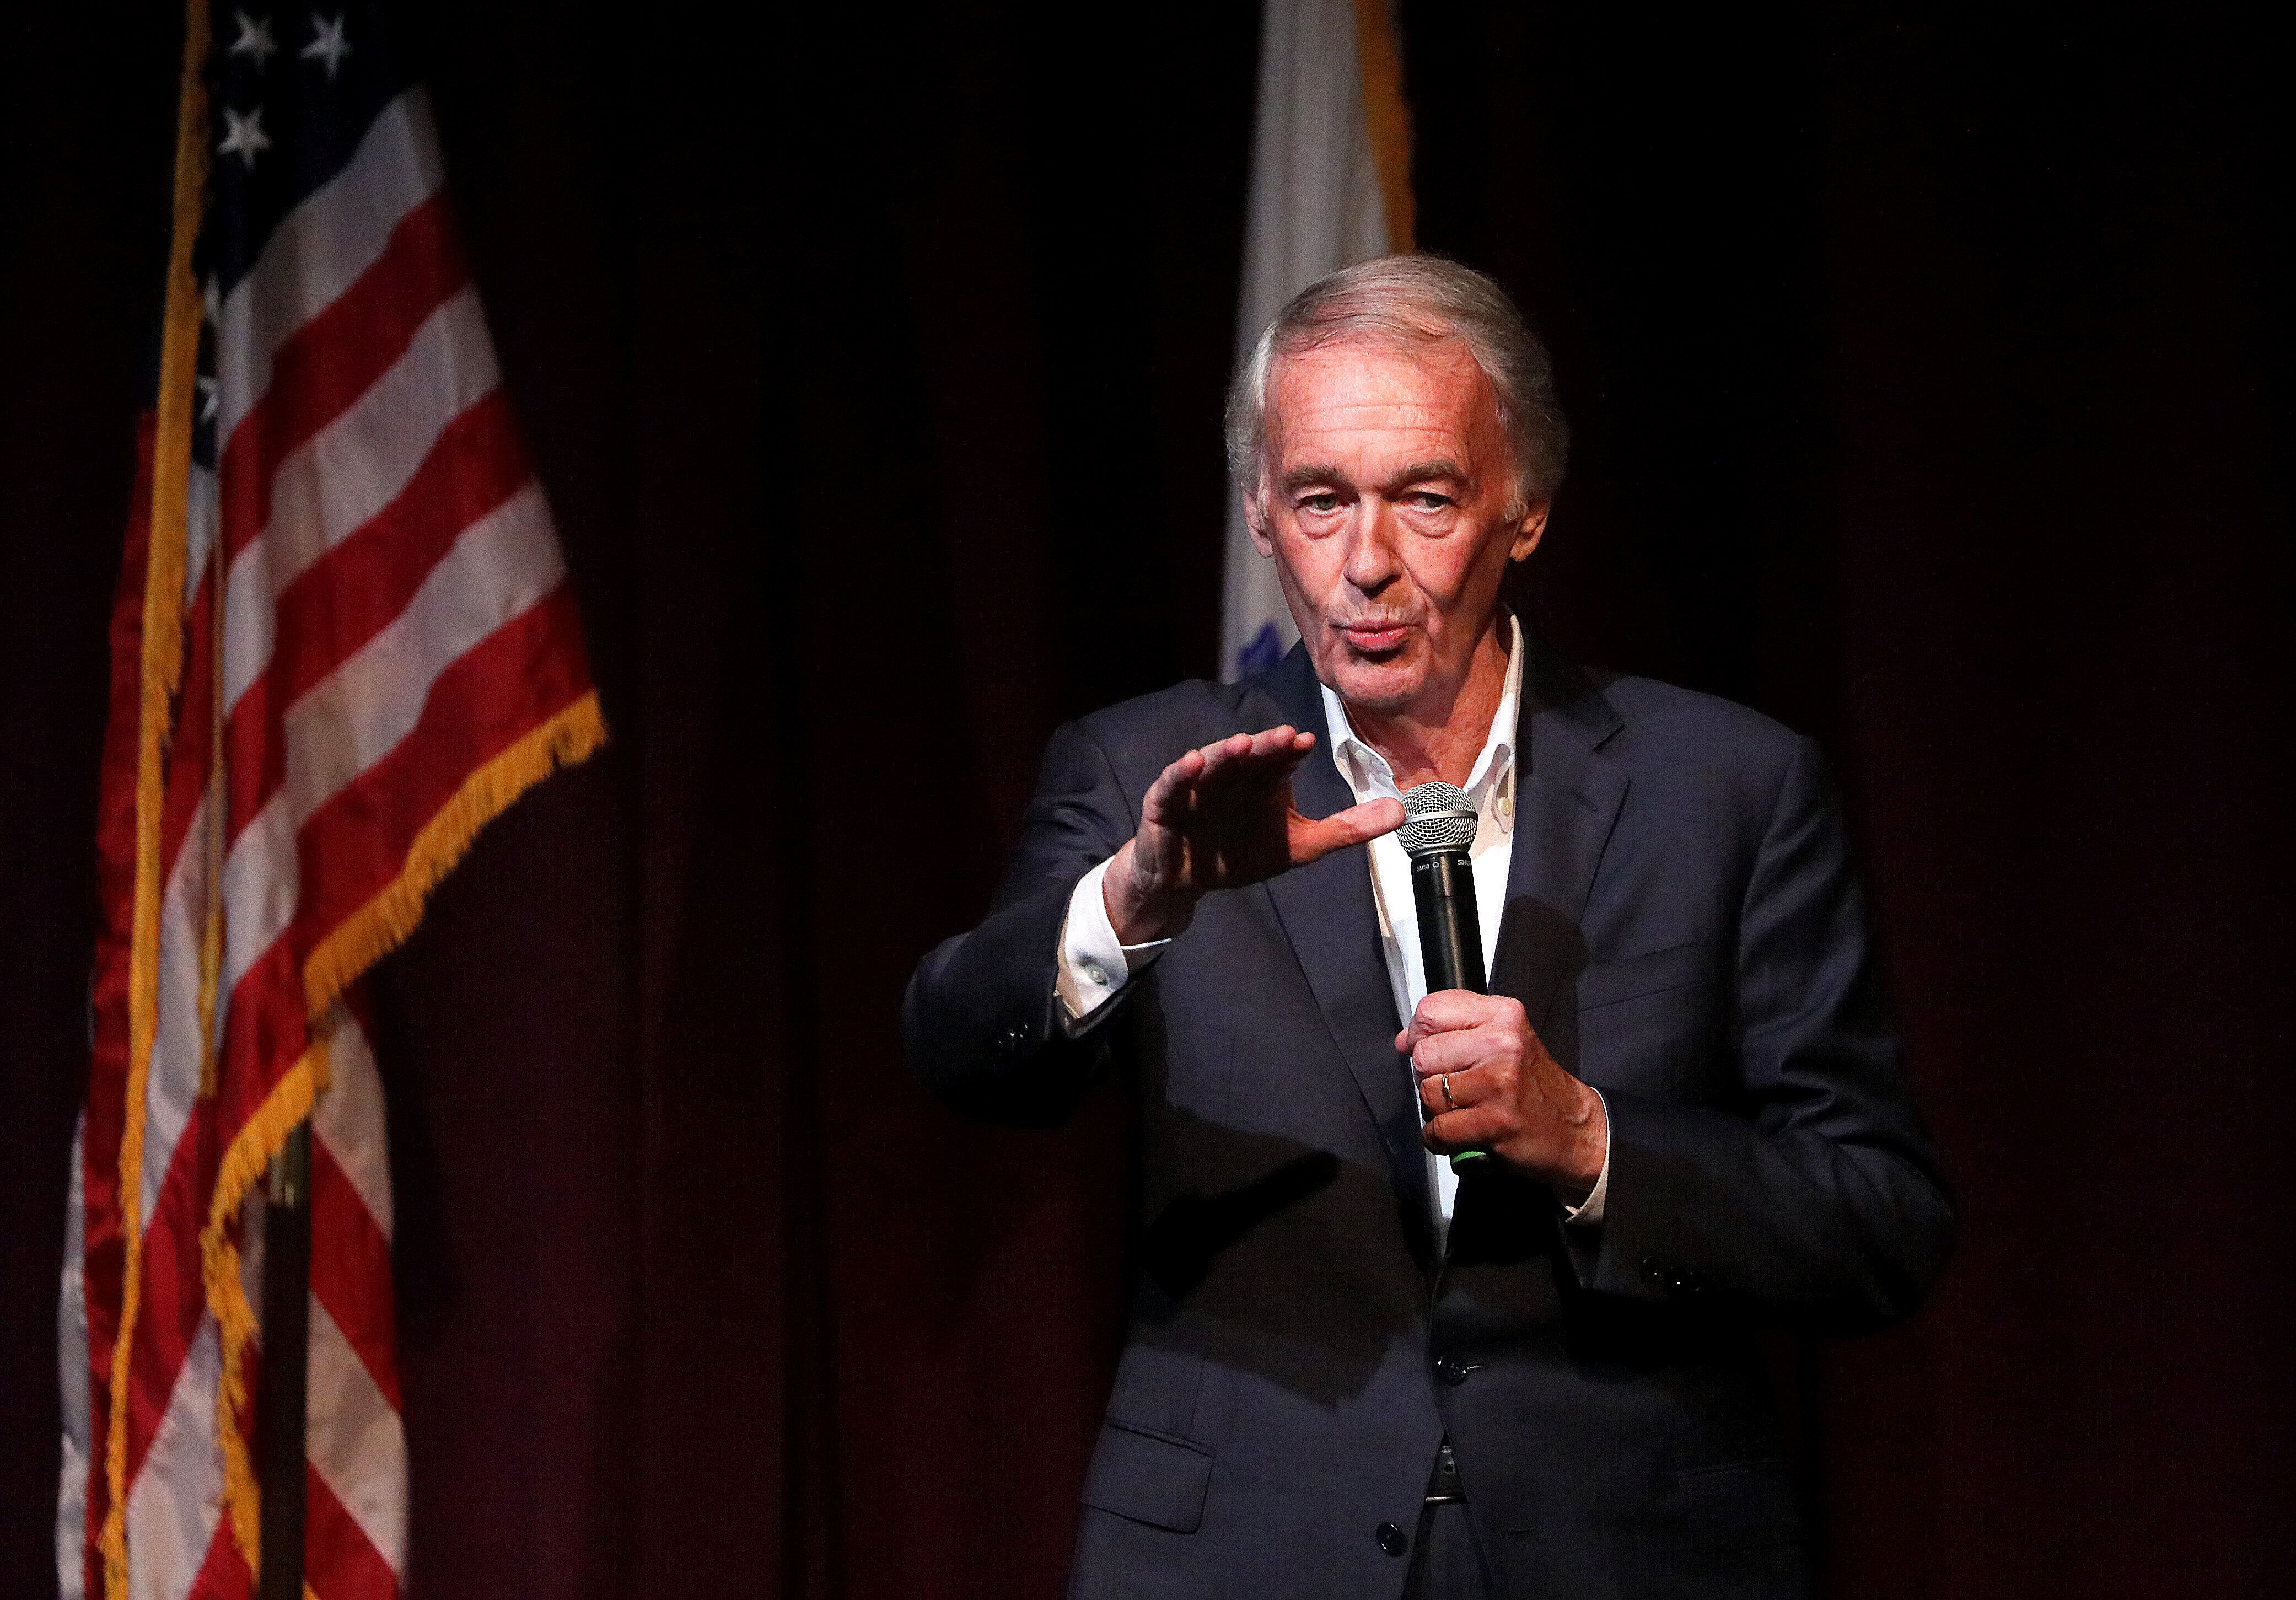 Sen. Ed Markey speaks during a community town hall discussion on the Green New Deal Resolution and solution to fighting clima